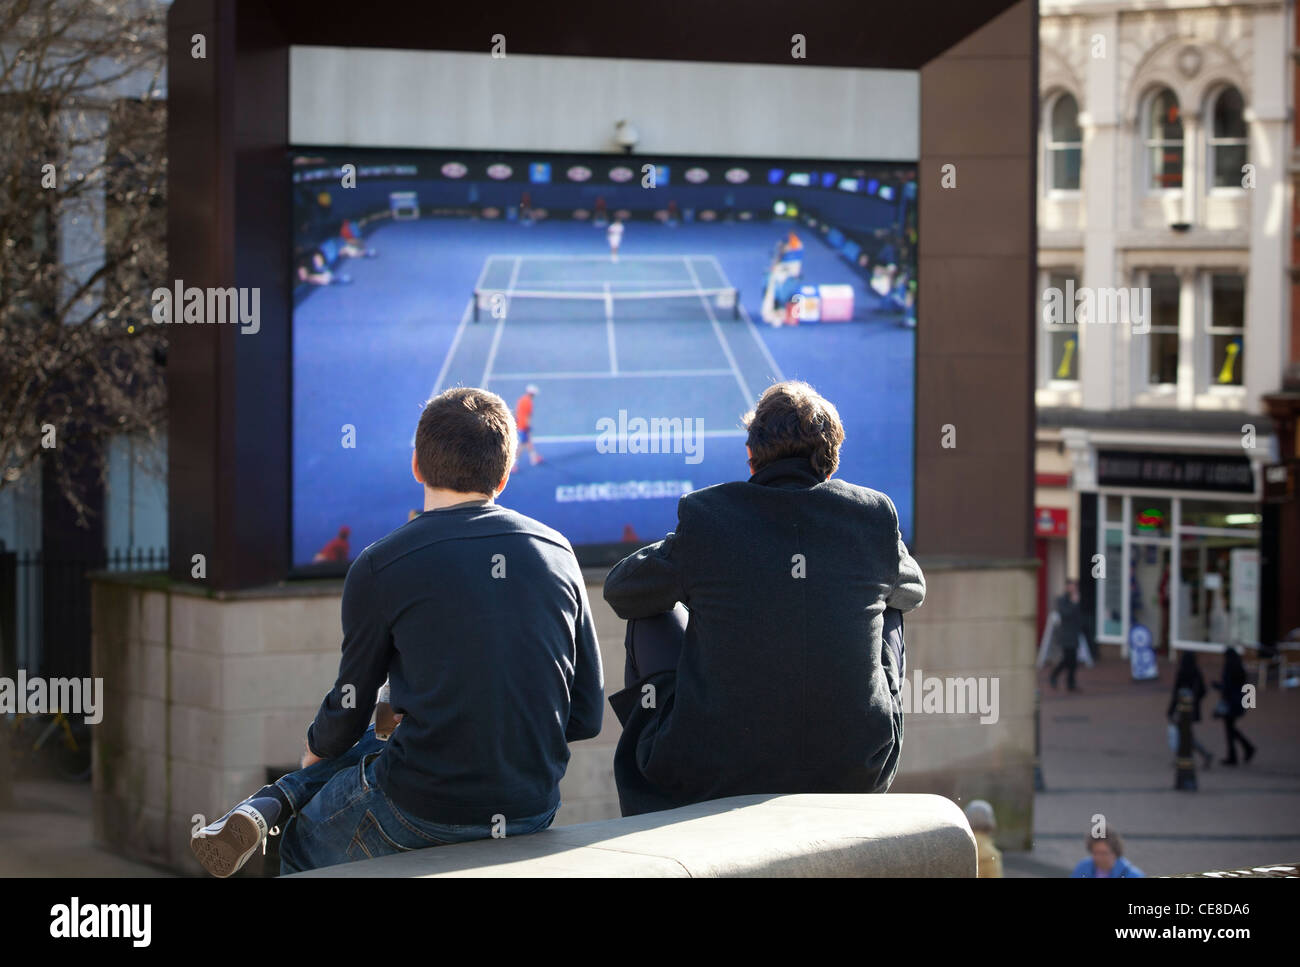 Members of the public watch a tennis match on the 'Big Screen' in Victoria Square, Birmingham. - Stock Image